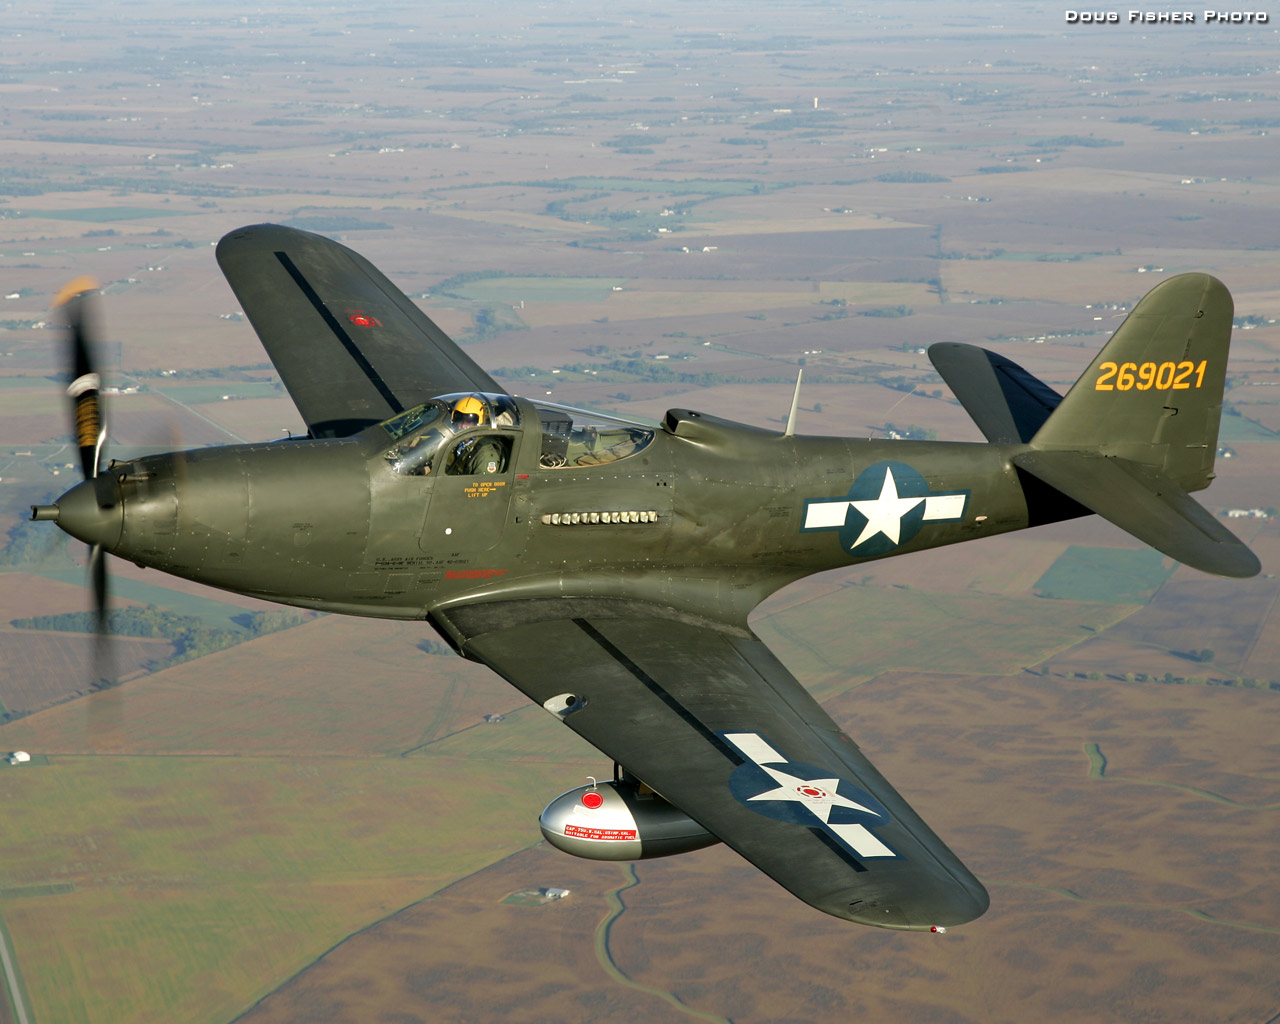 John Bagley is the owner and operator of this rare Bell P-63C-5 Kingcobra (S/N 43-11223). Photo by Doug Fisher